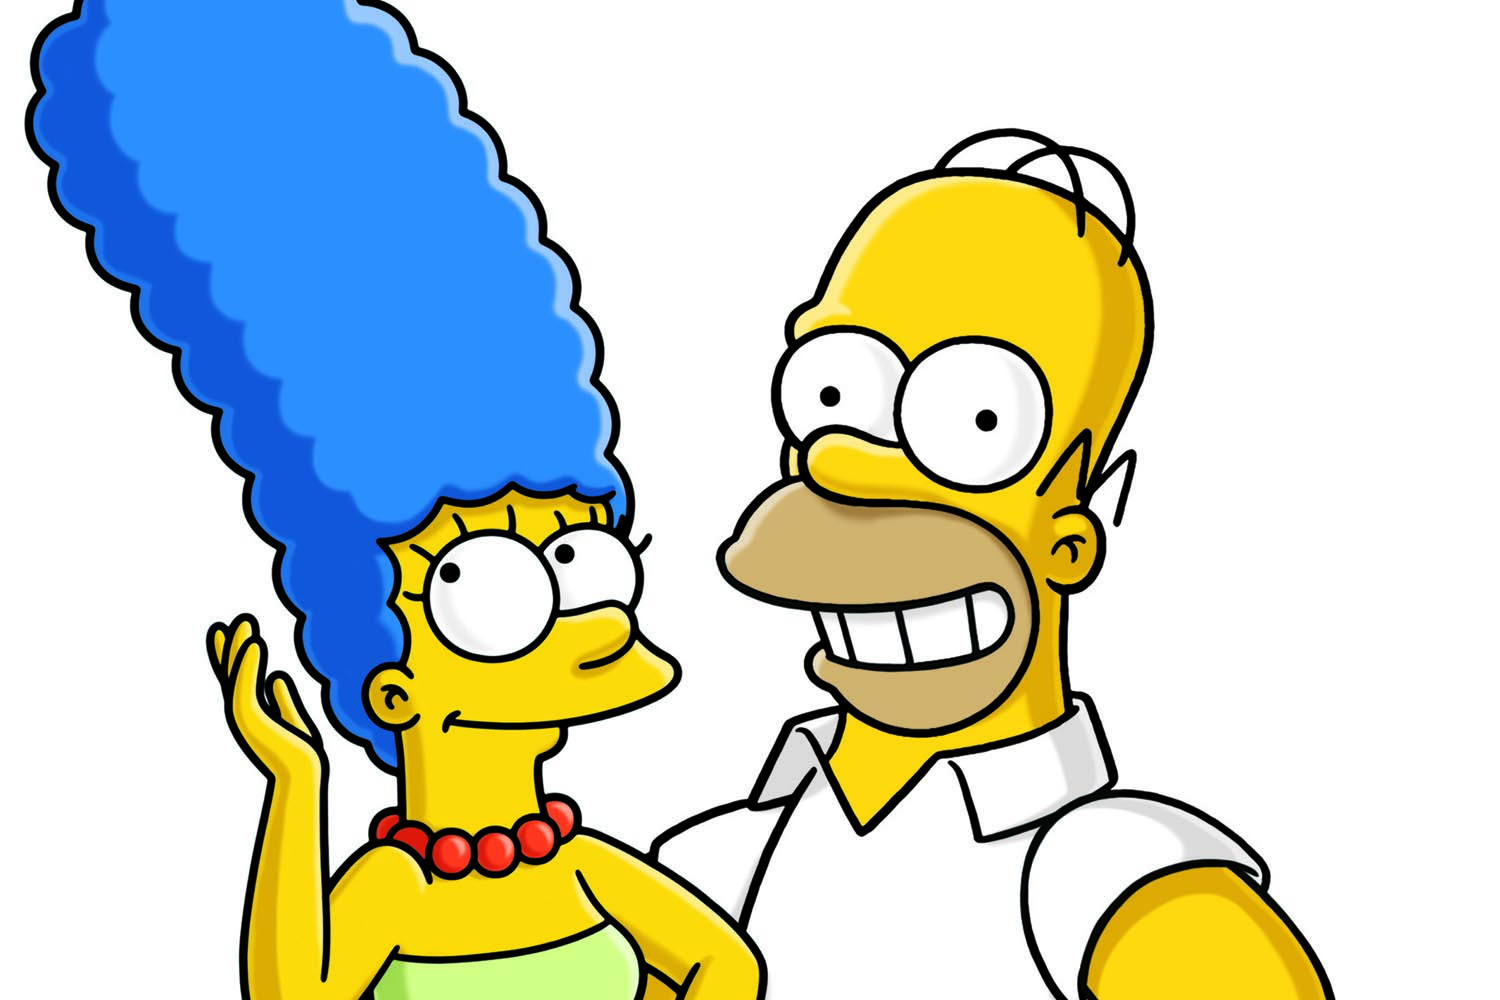 Marge and homer to split in season 27 of the simpsons - Homer simpson and bart simpson ...